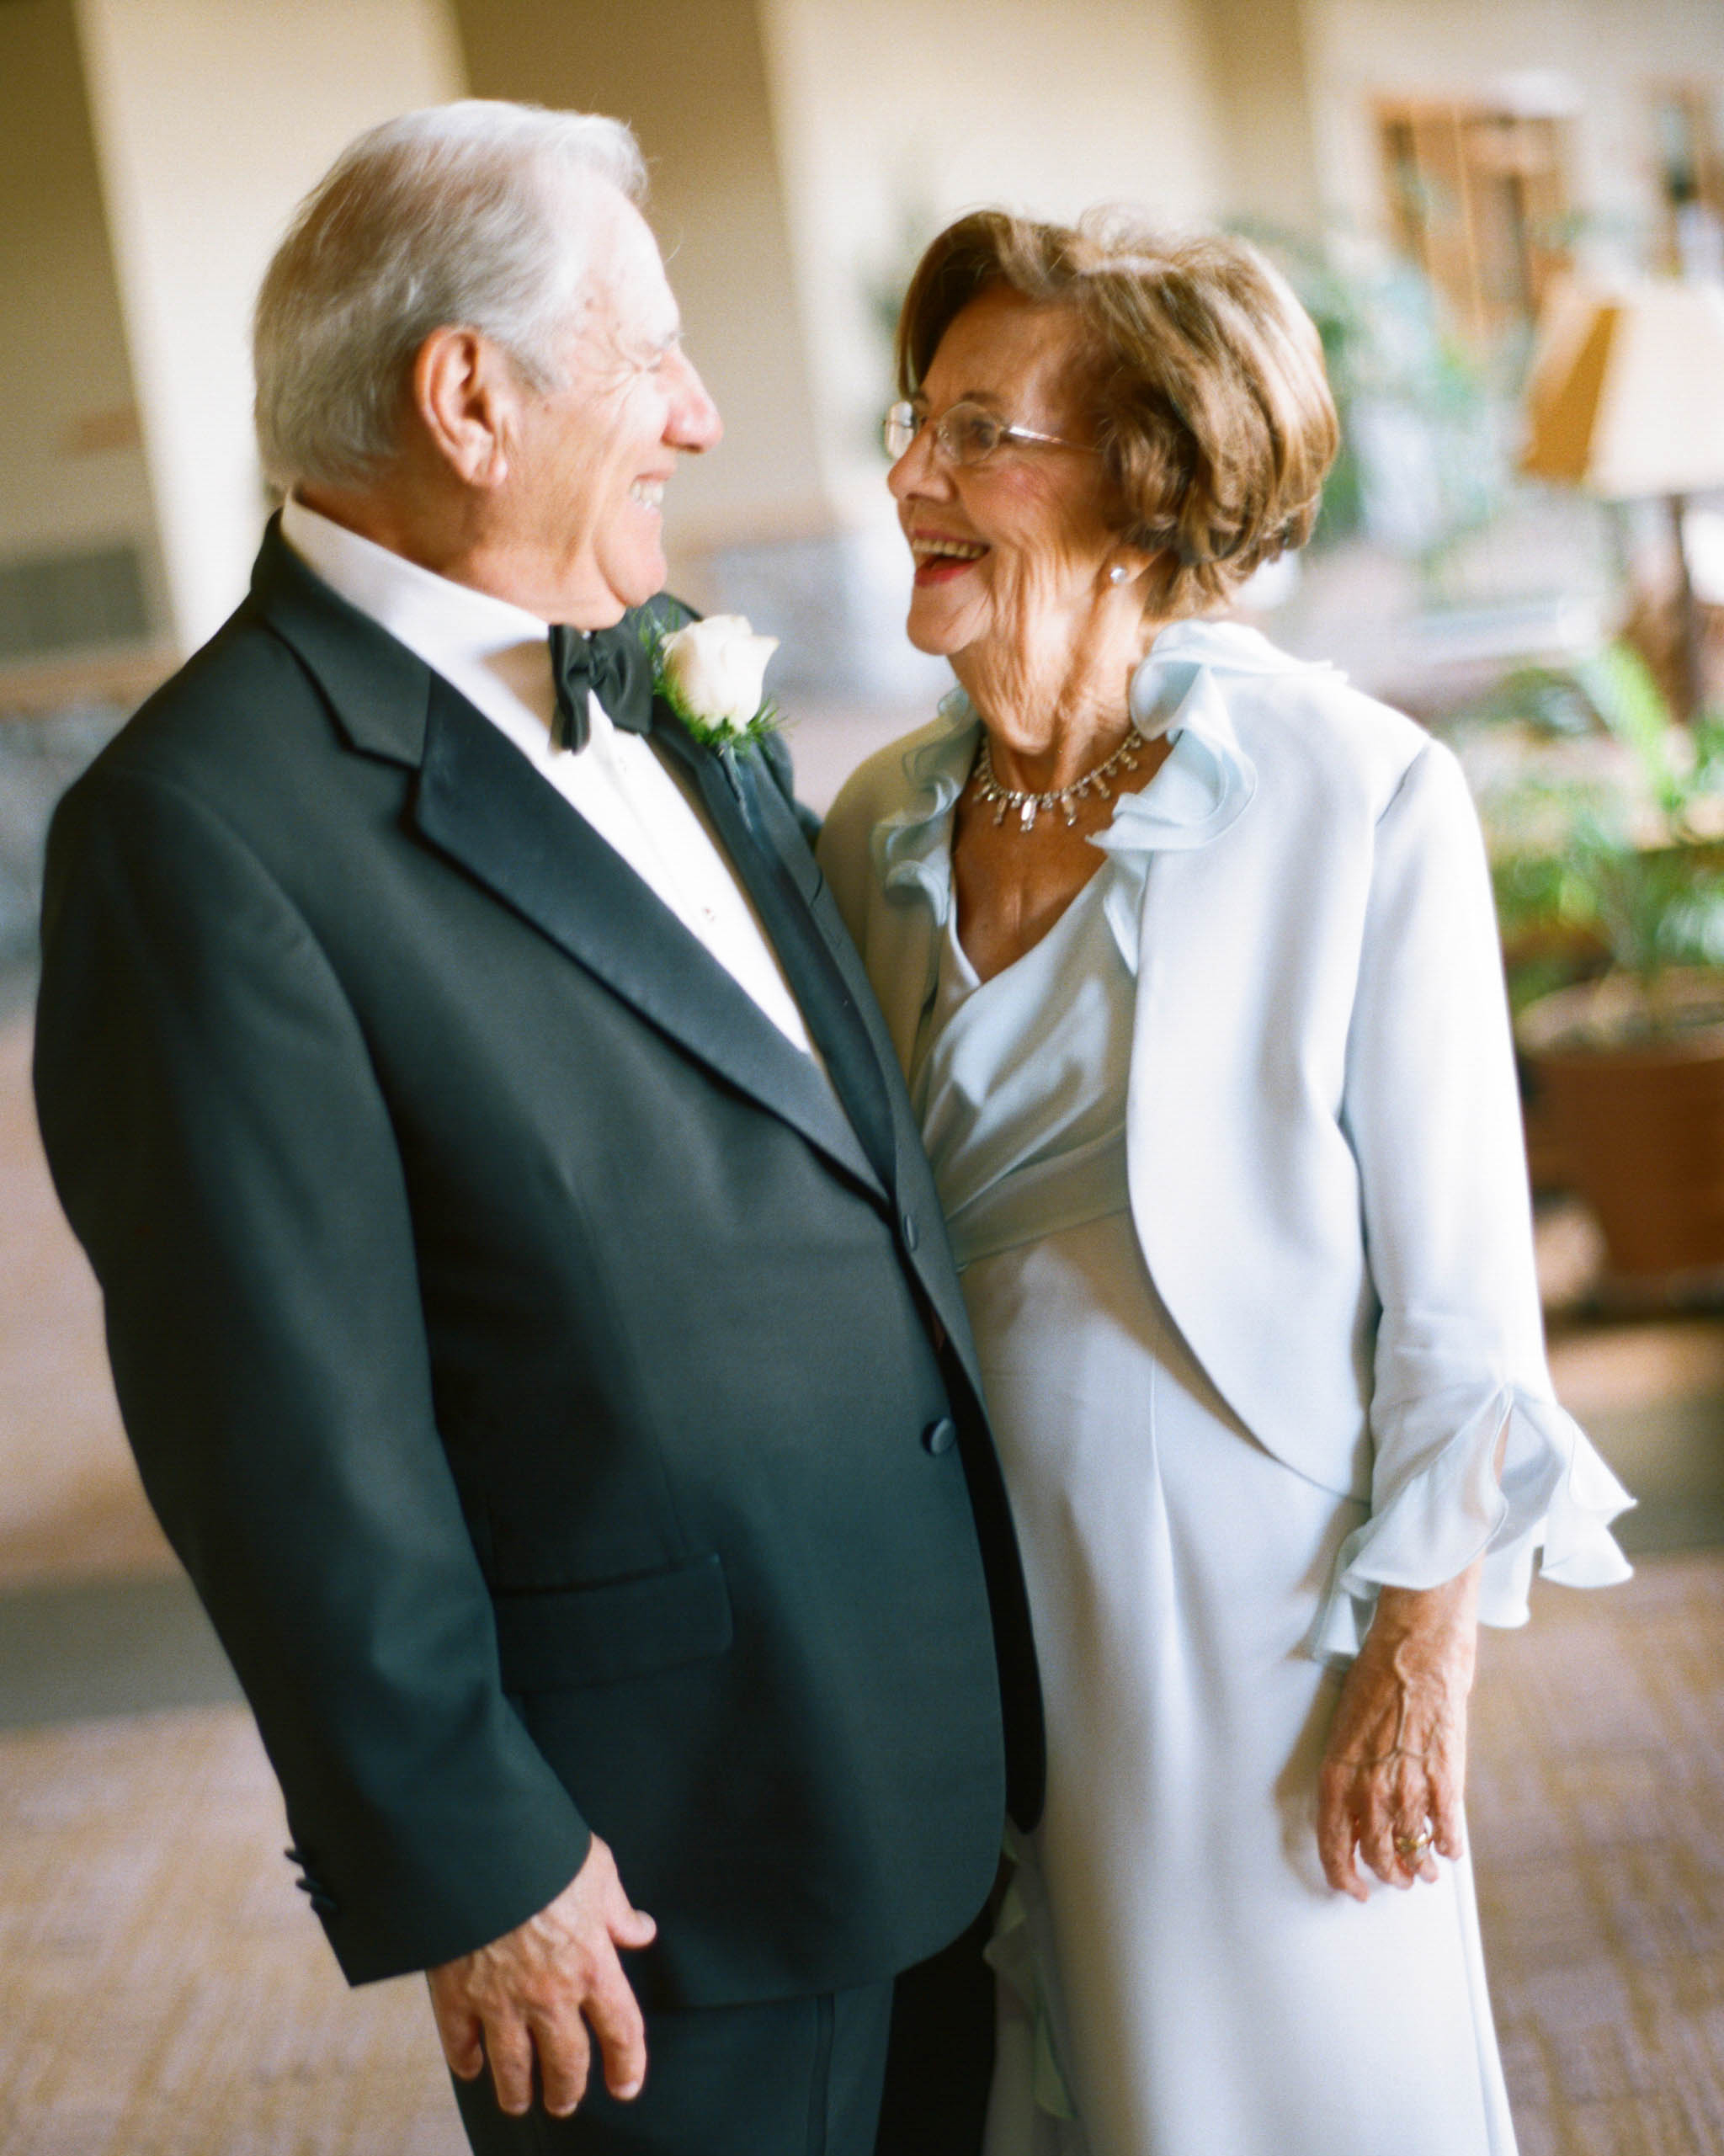 My parents and my aunt and uncle are celebrating their anniversaries near our wedding day, and we'd like to honor them. Suggestions?